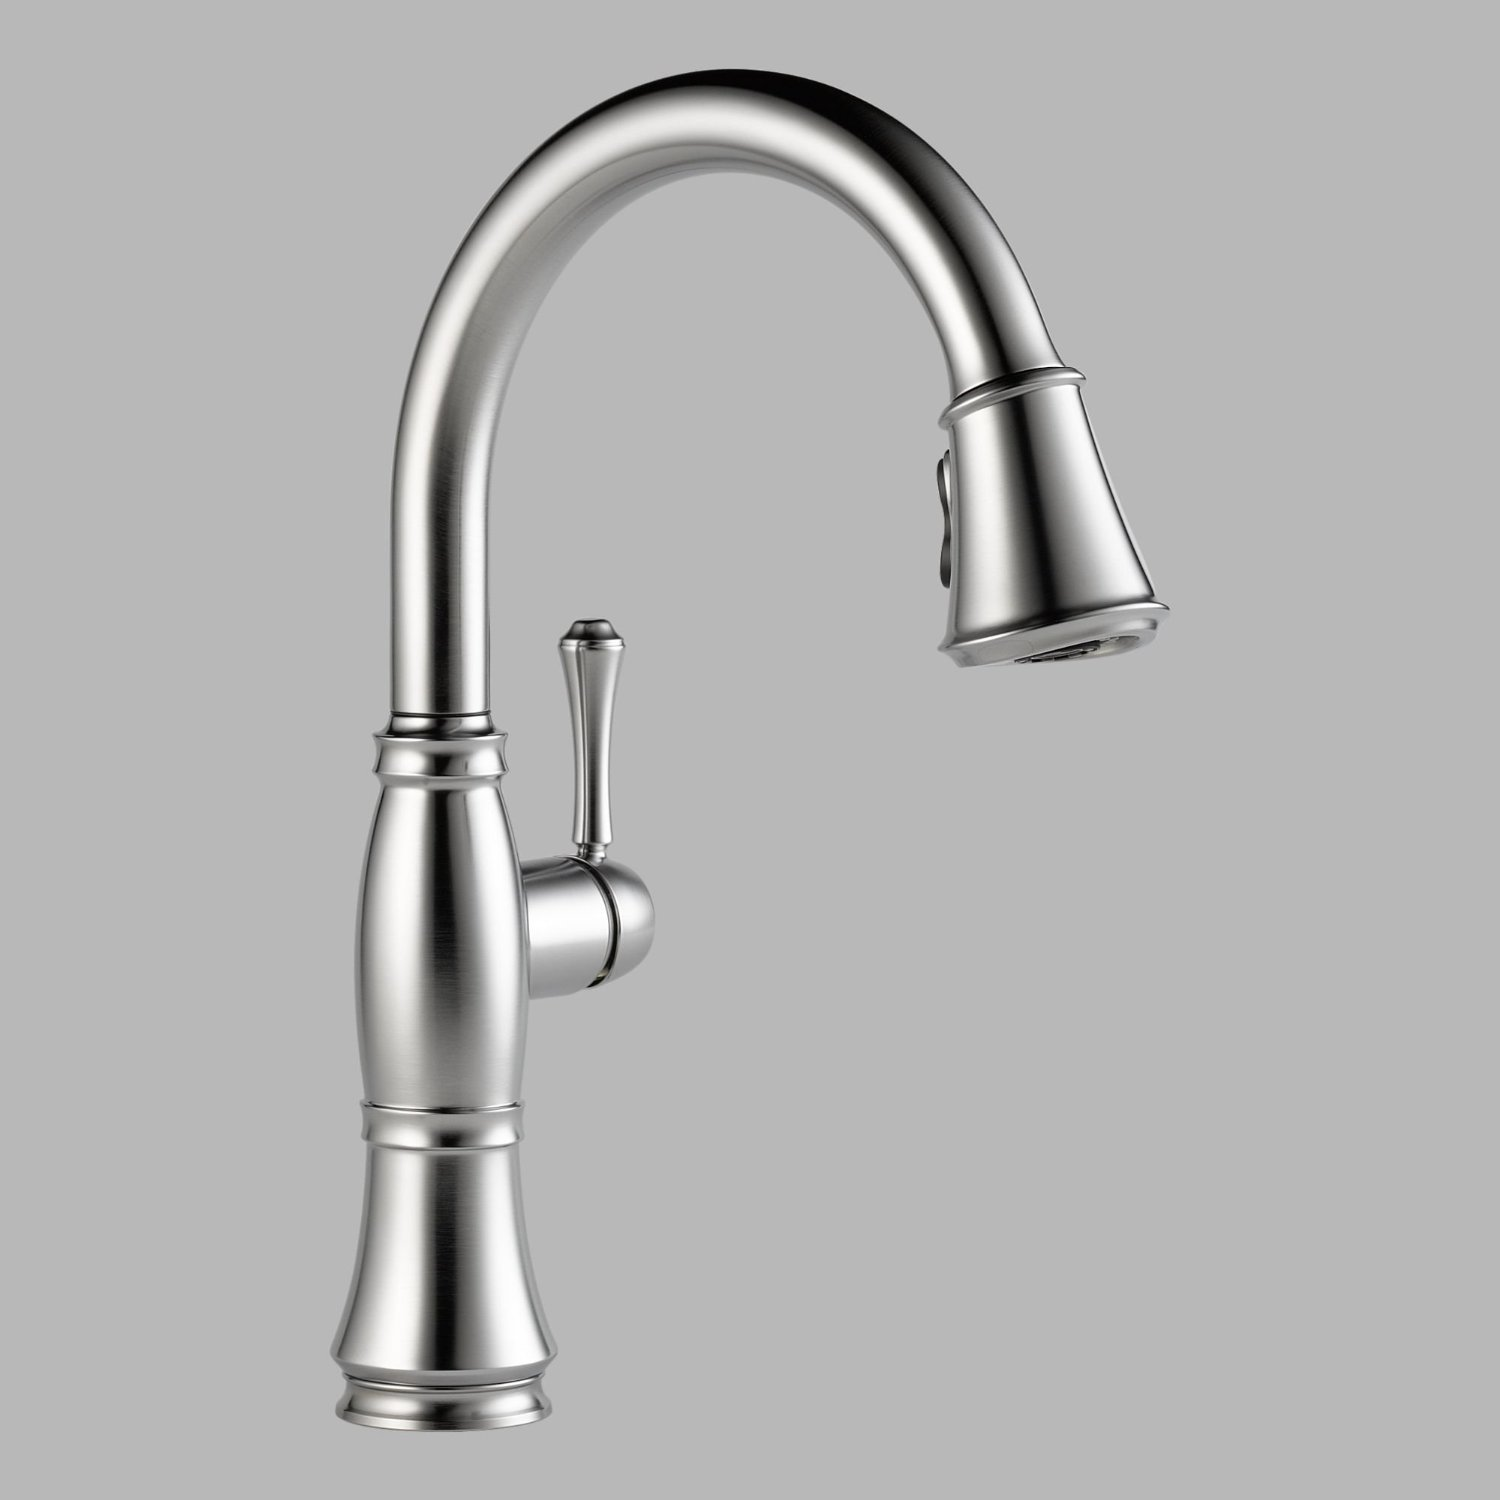 Best delta cassidy kitchen faucet for kitchen faucet ideas with delta single handle kitchen faucet with spray